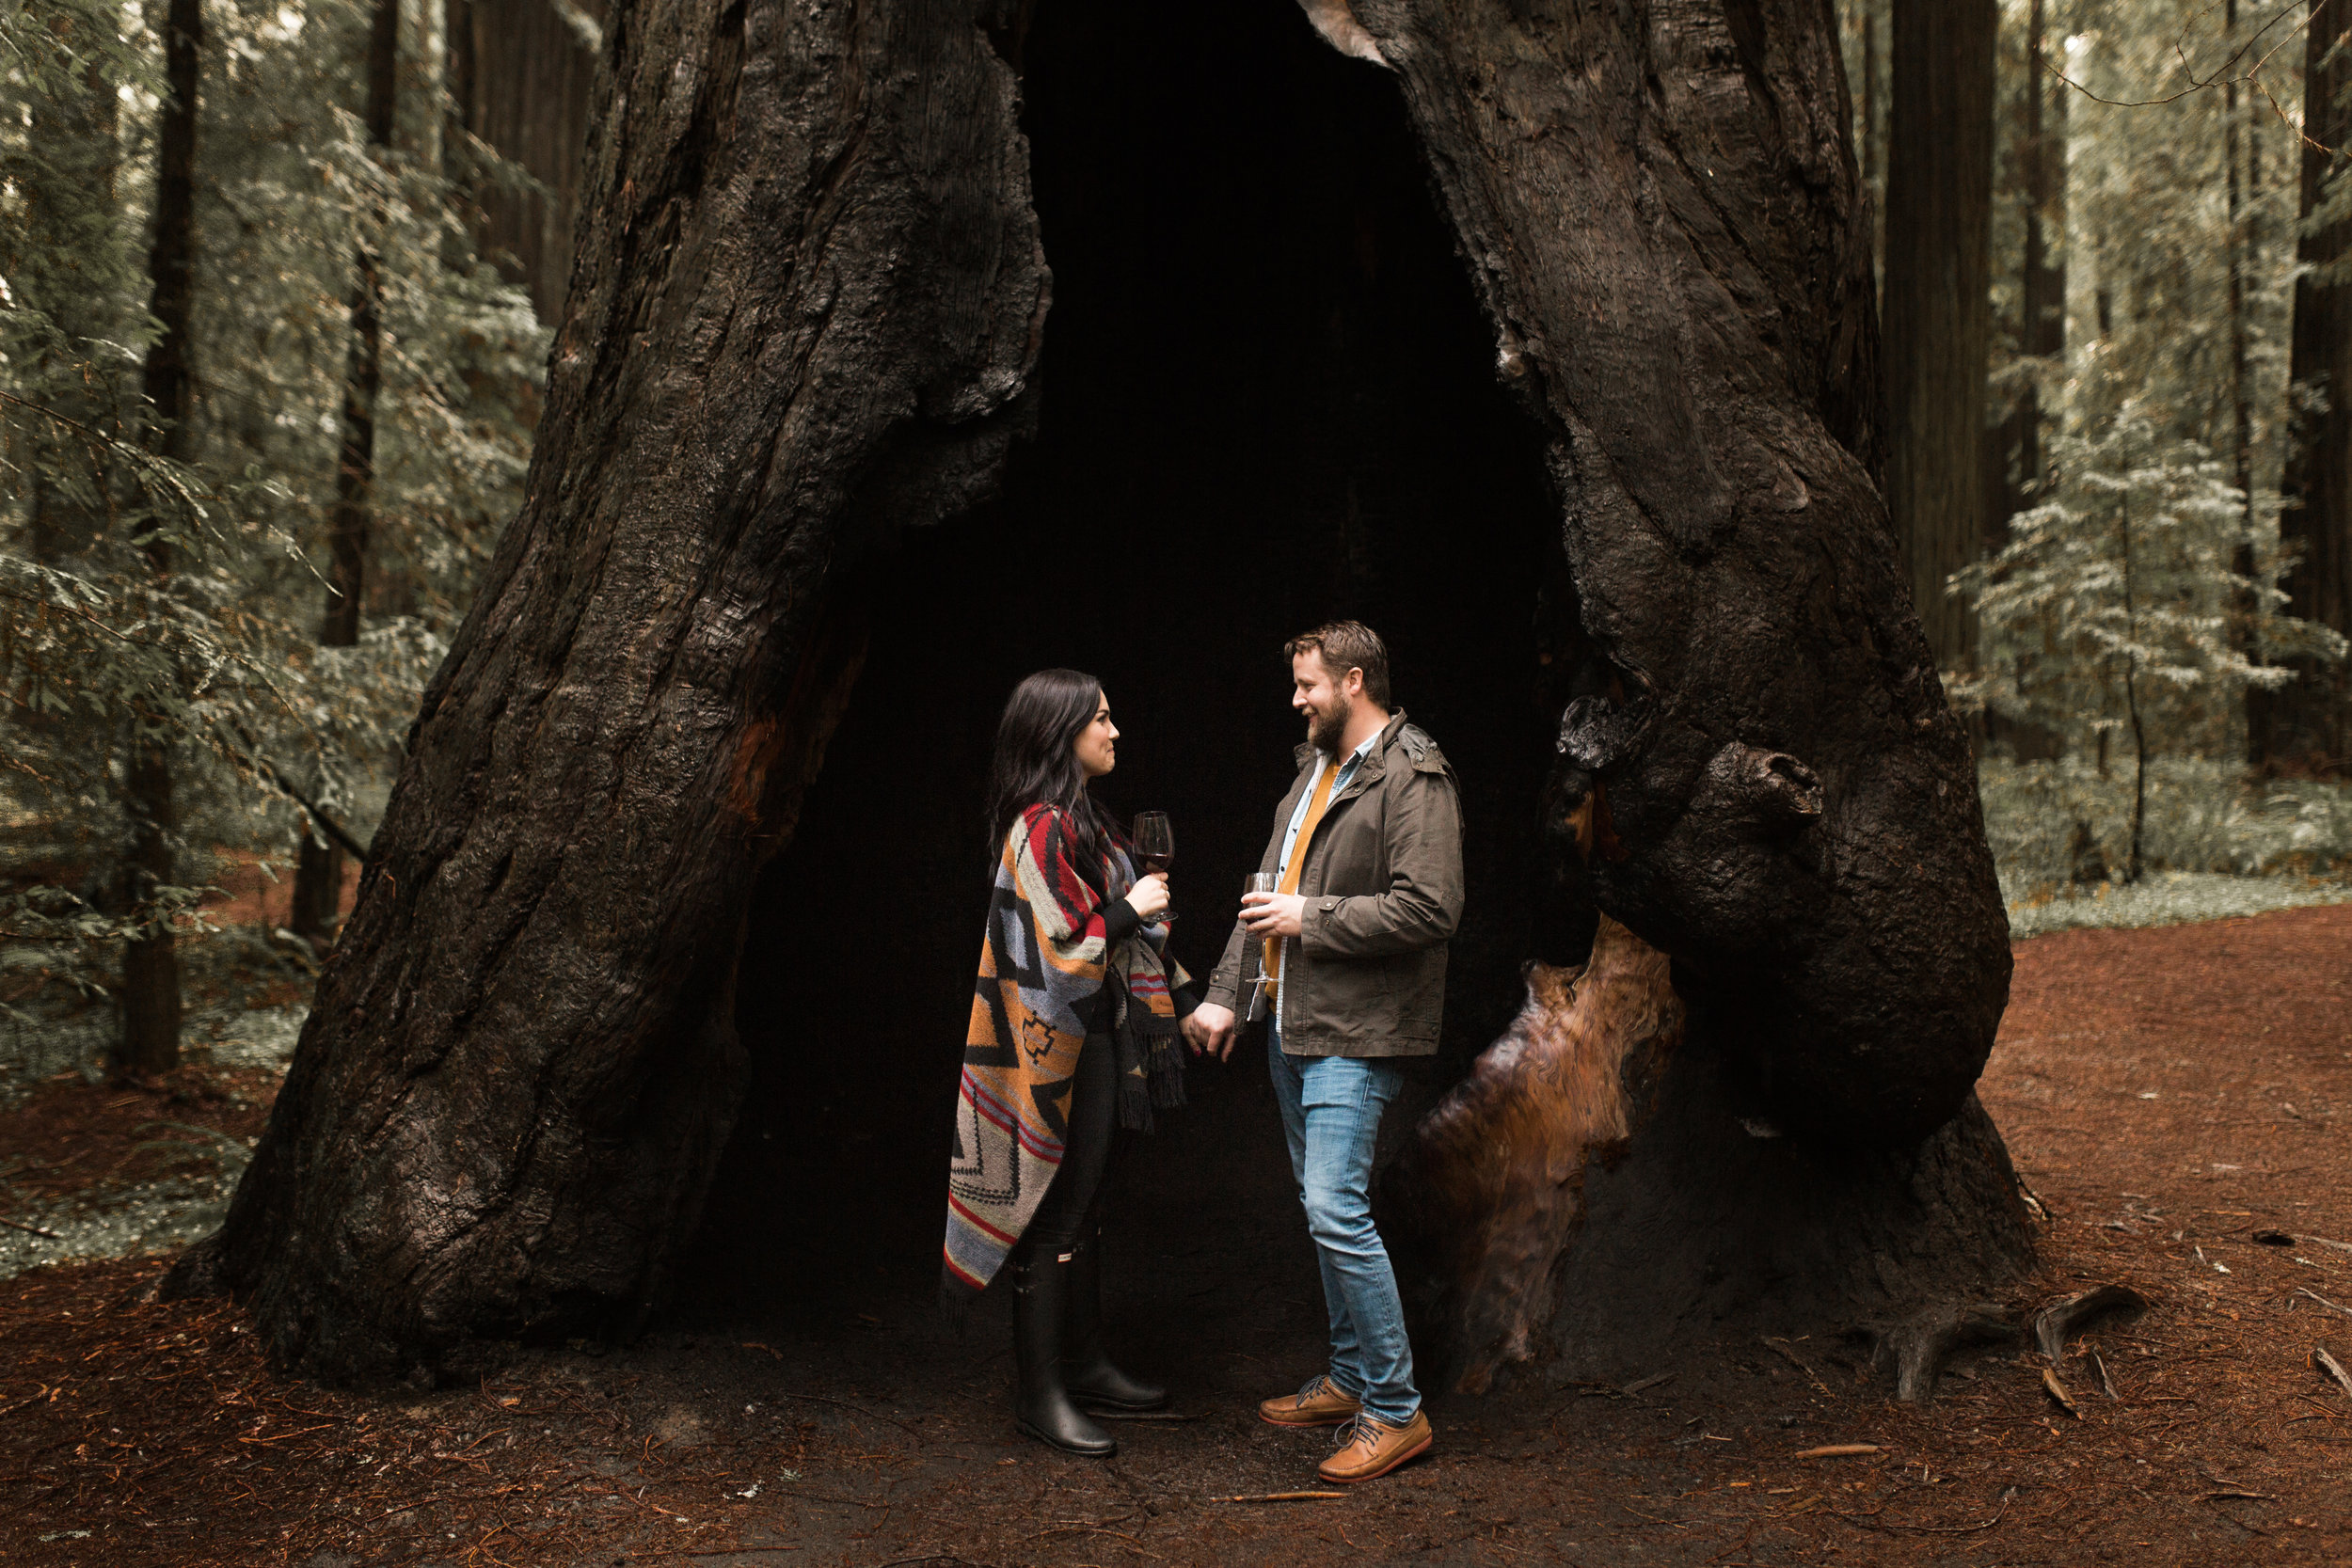 nicole-daacke-photography-redwoods-national-park-forest-rainy-foggy-adventure-engagement-session-humboldt-county-old-growth-redwood-tree-elopement-intimate-wedding-photographer-6.jpg